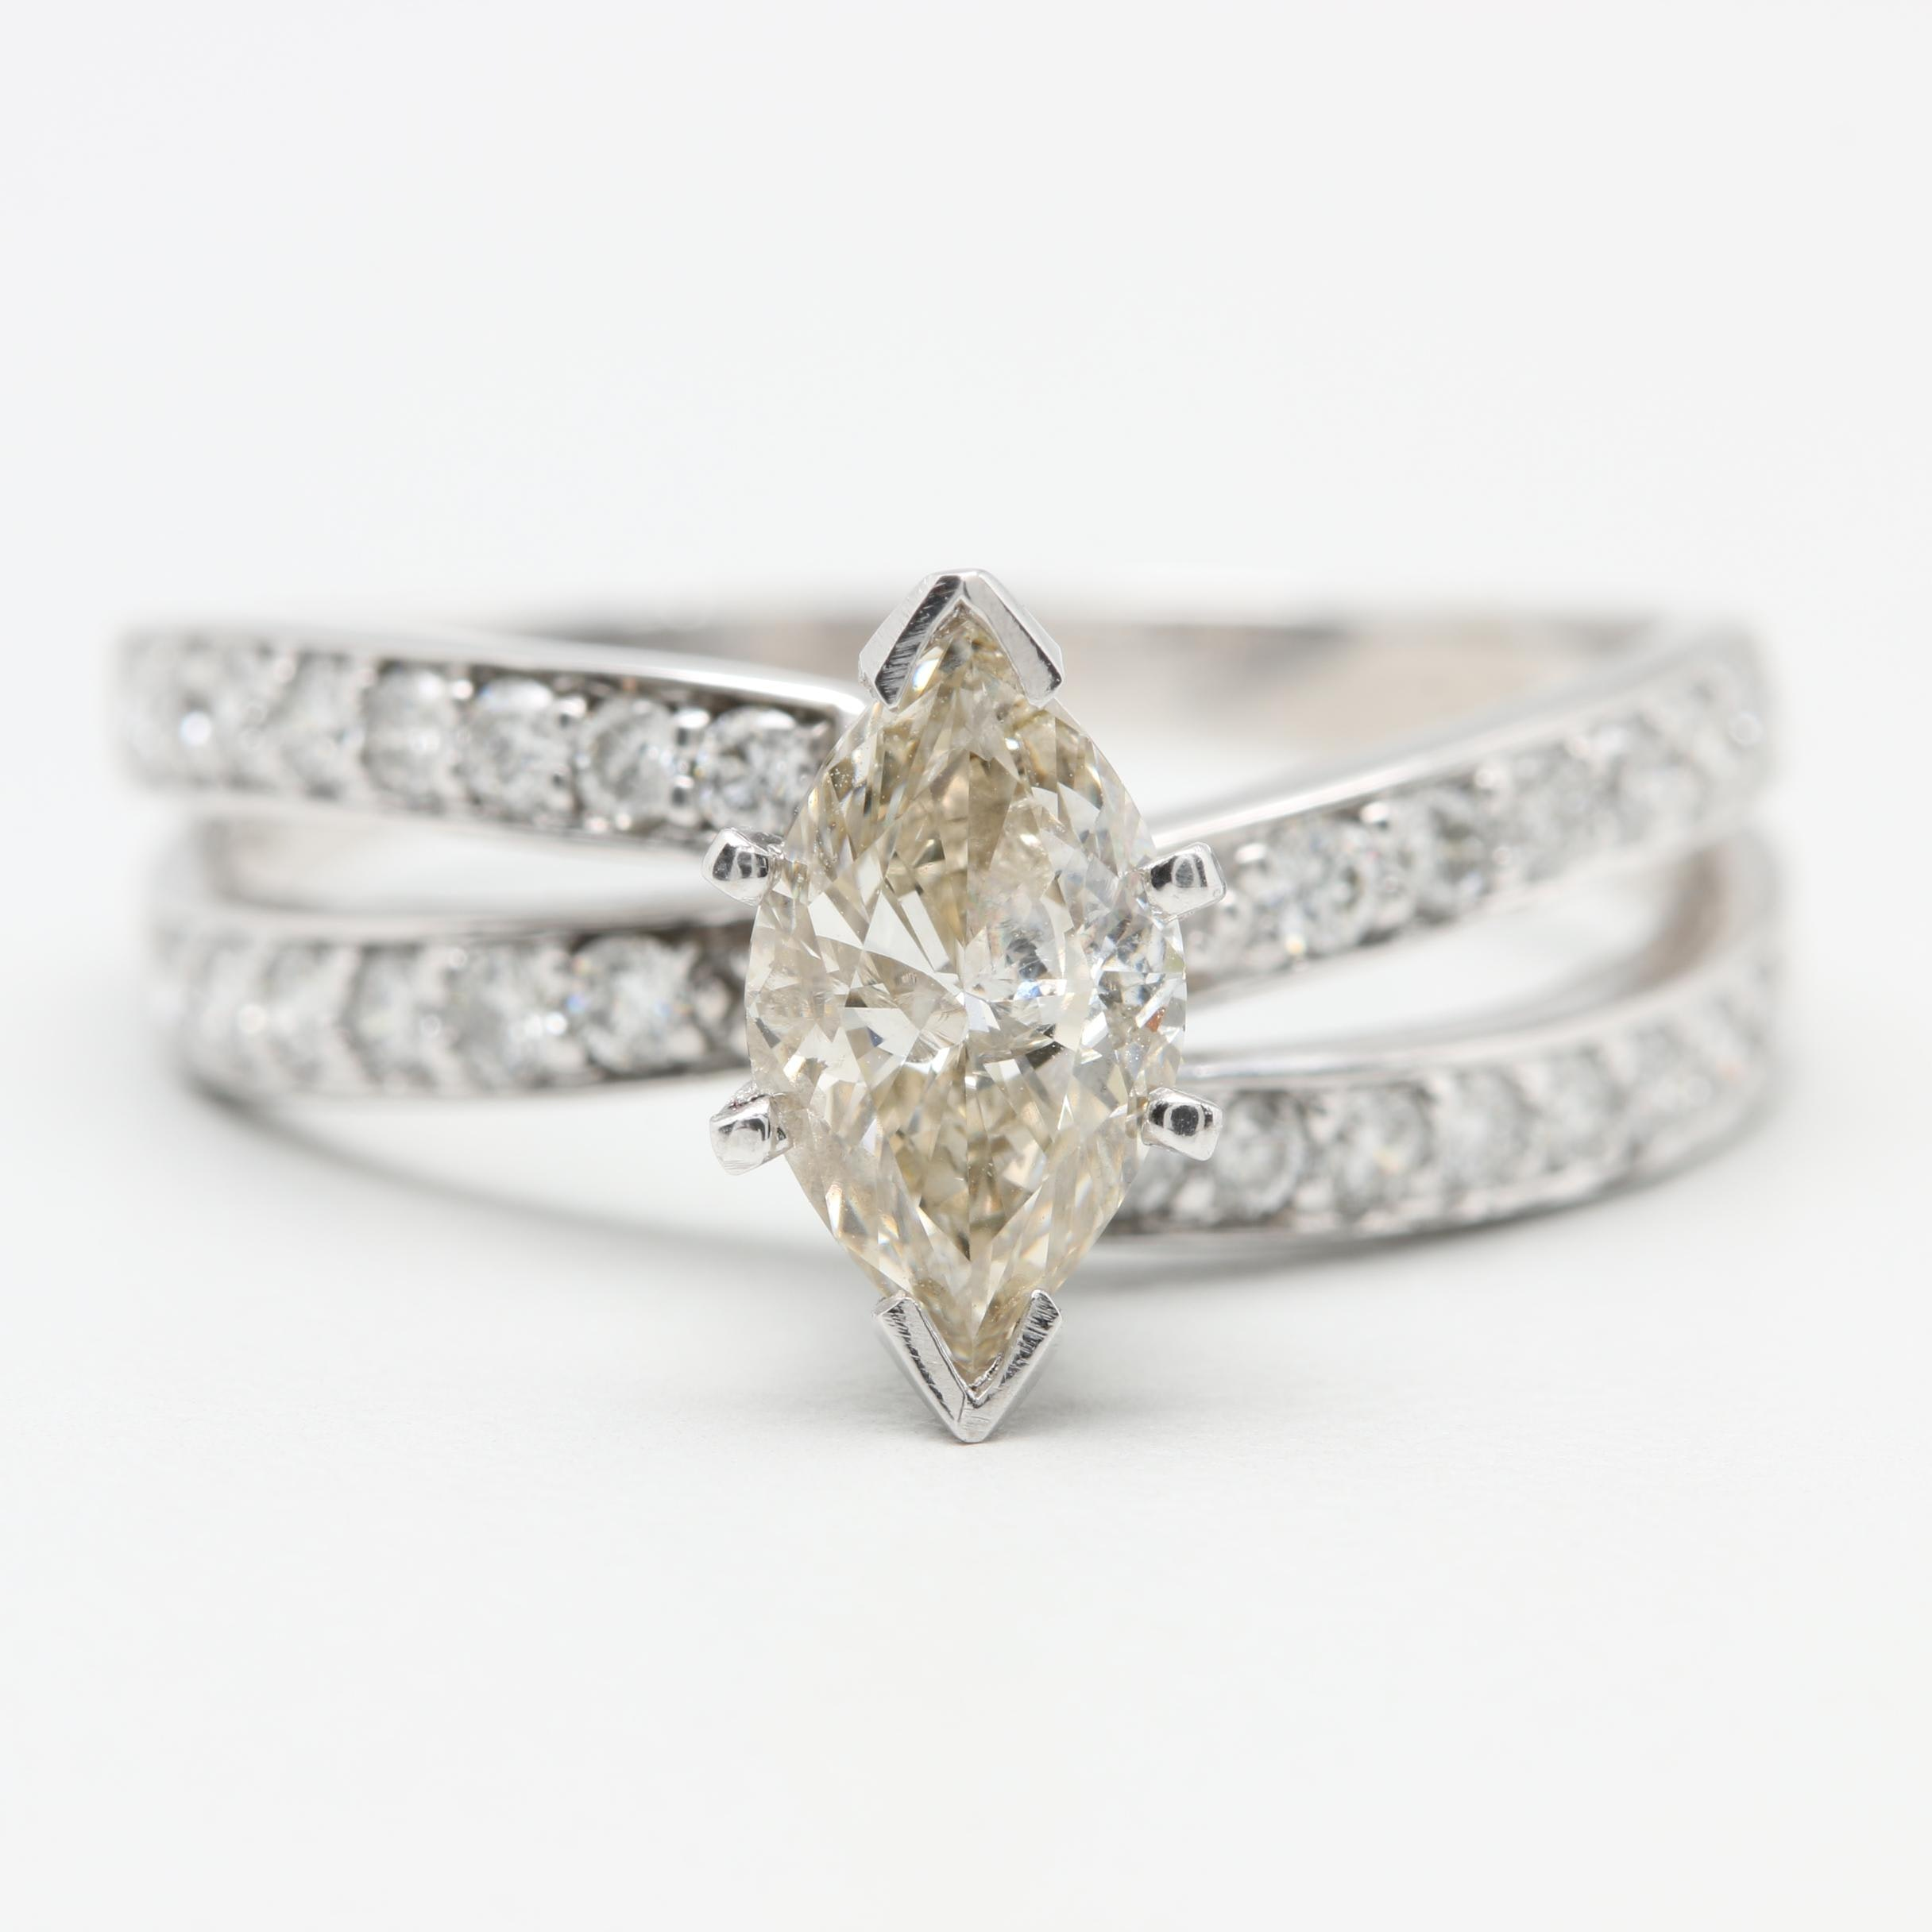 14K White Gold 1.49 CTW Diamond Ring with Platinum Accents